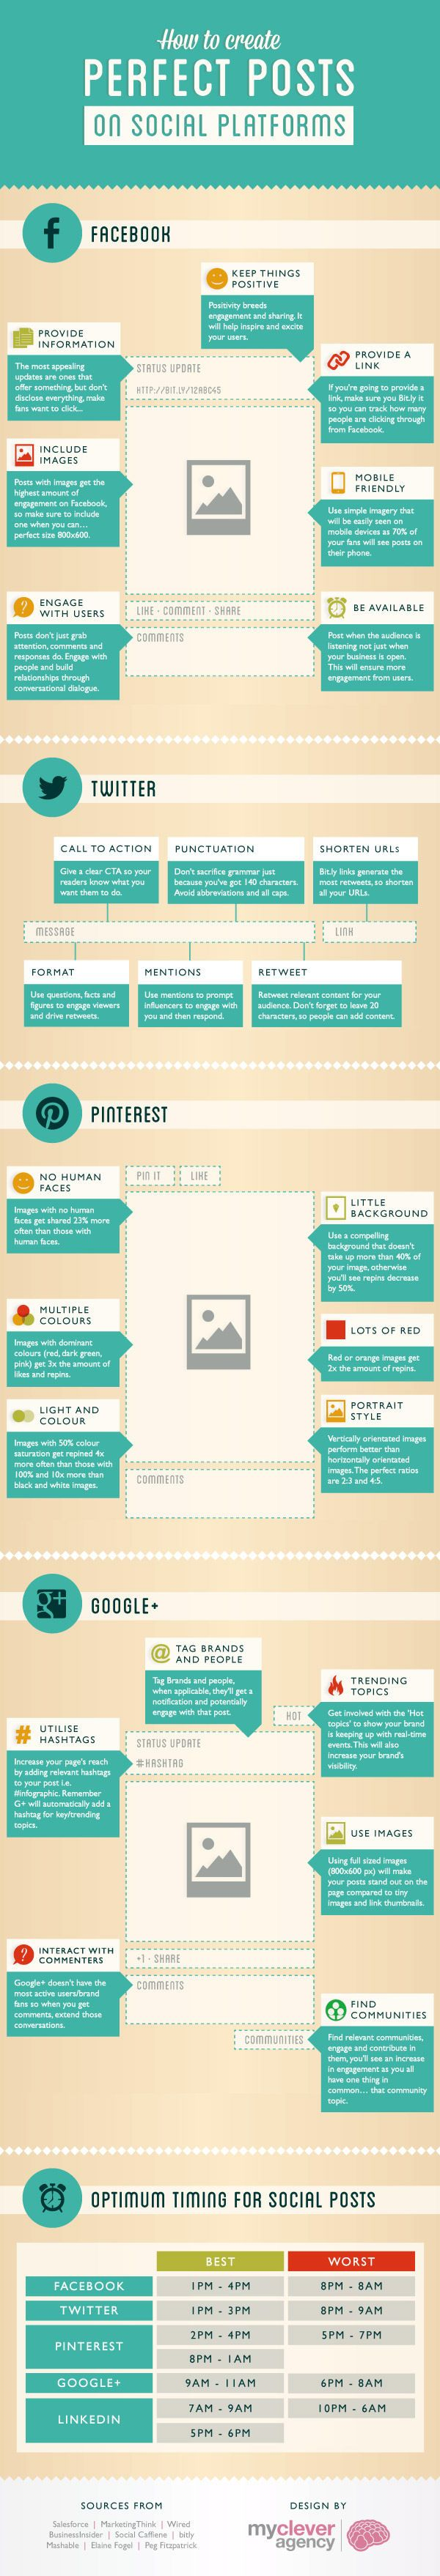 Create perfect social media posts #infographic Create Perfect Posts on #Facebook, #Twitter, #Pinterest and #Google+